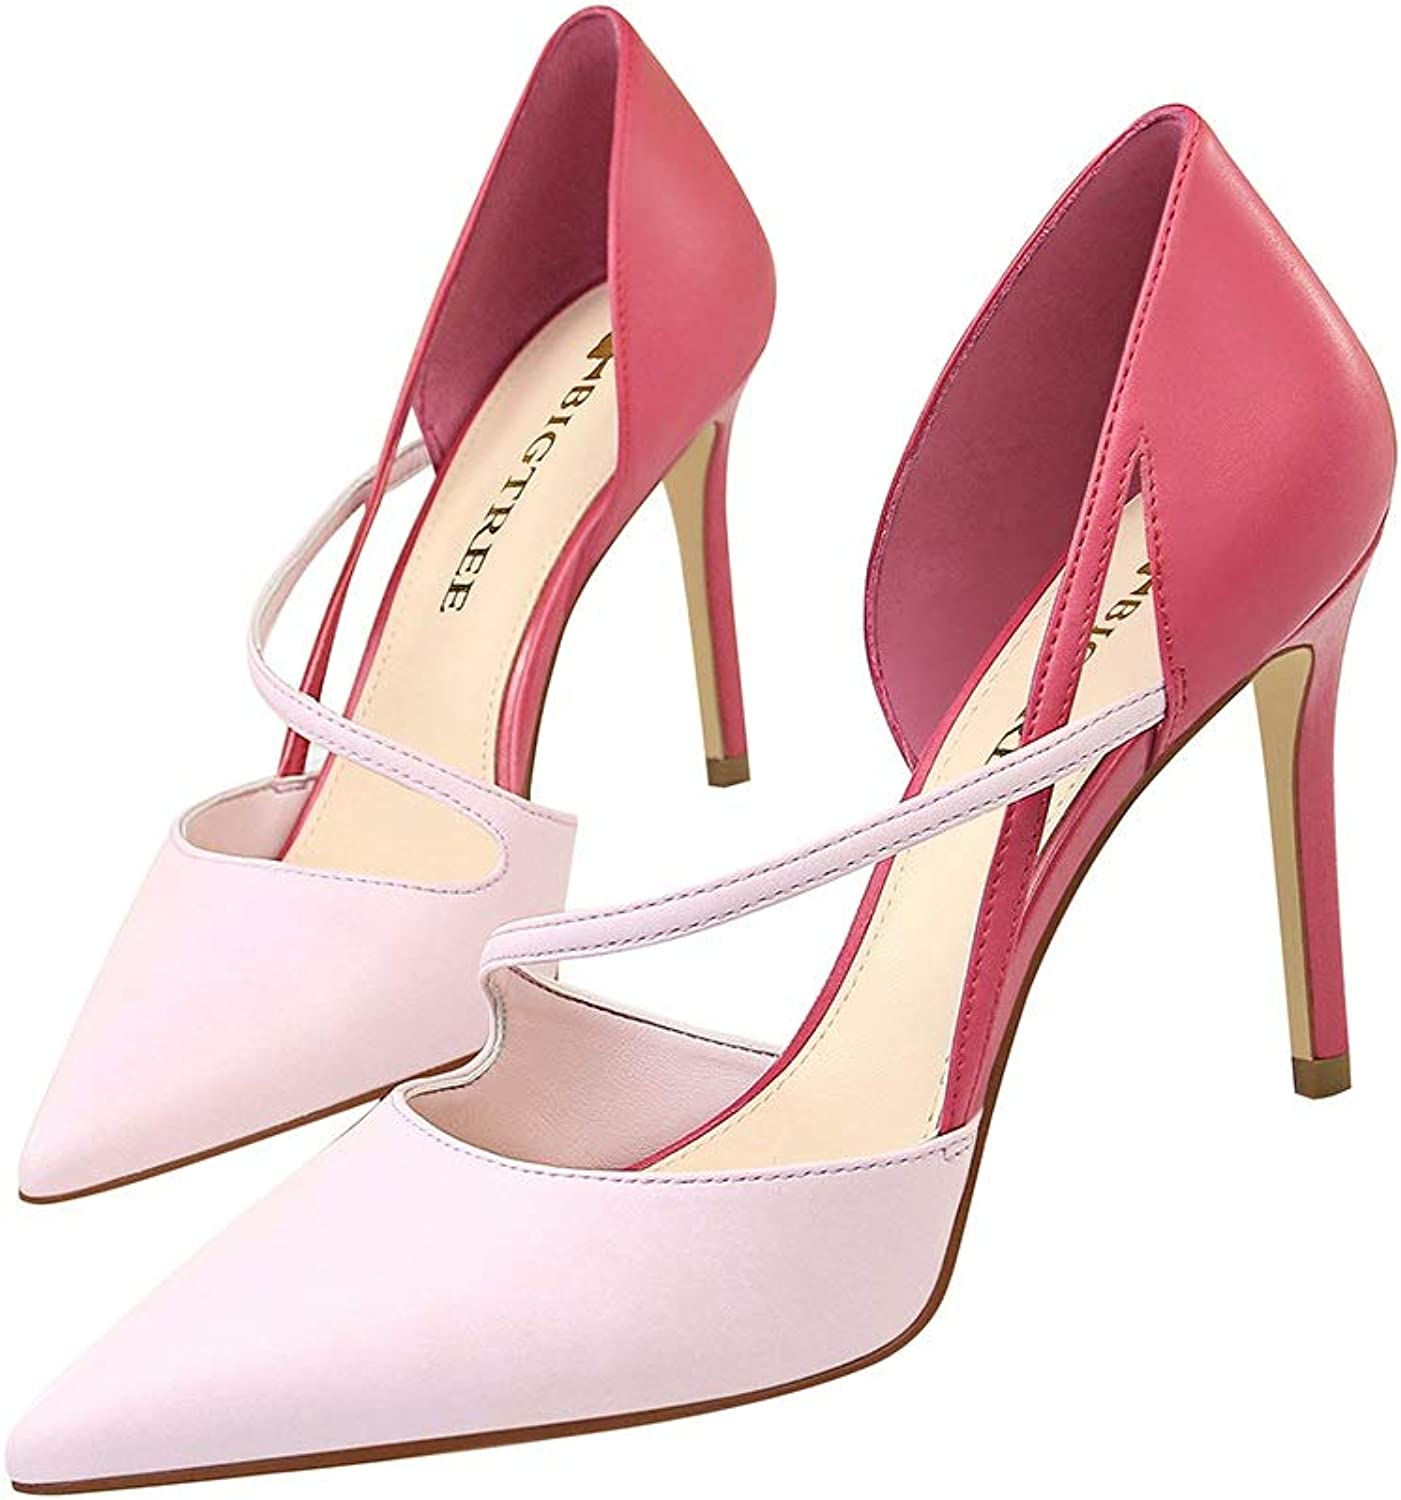 QARYYQ Sexy shoes Sandals, Women's High Heels, 9.5 cm Women's shoes (color   pink Red, Size   34)